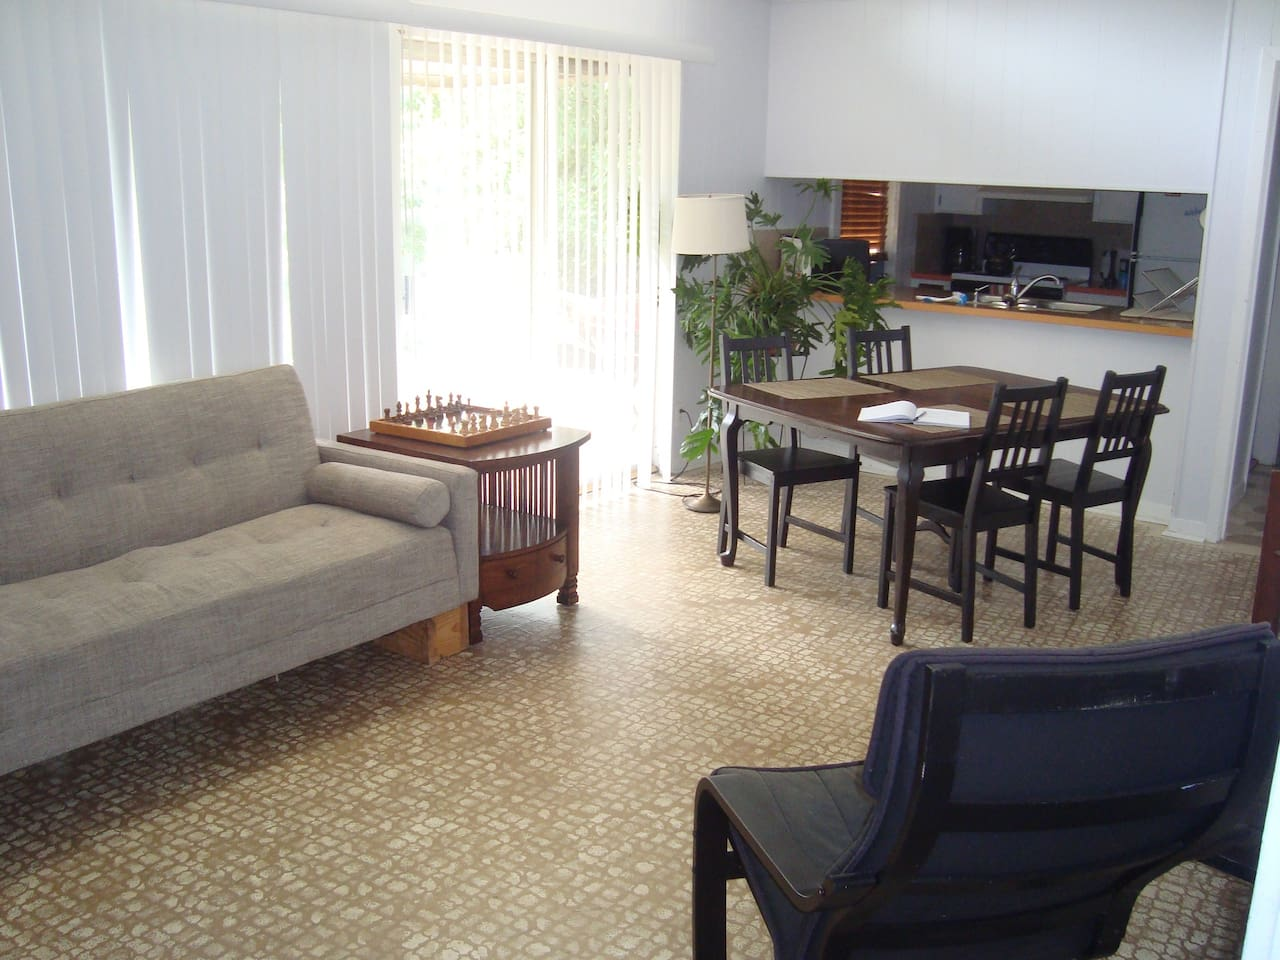 This is the living room as it appears now. These are clearly not professional photos, but they are up to date! The living room has 2 sliding glass doors and gets lovely indirect light all day. The doors give access to the patio and back yard.